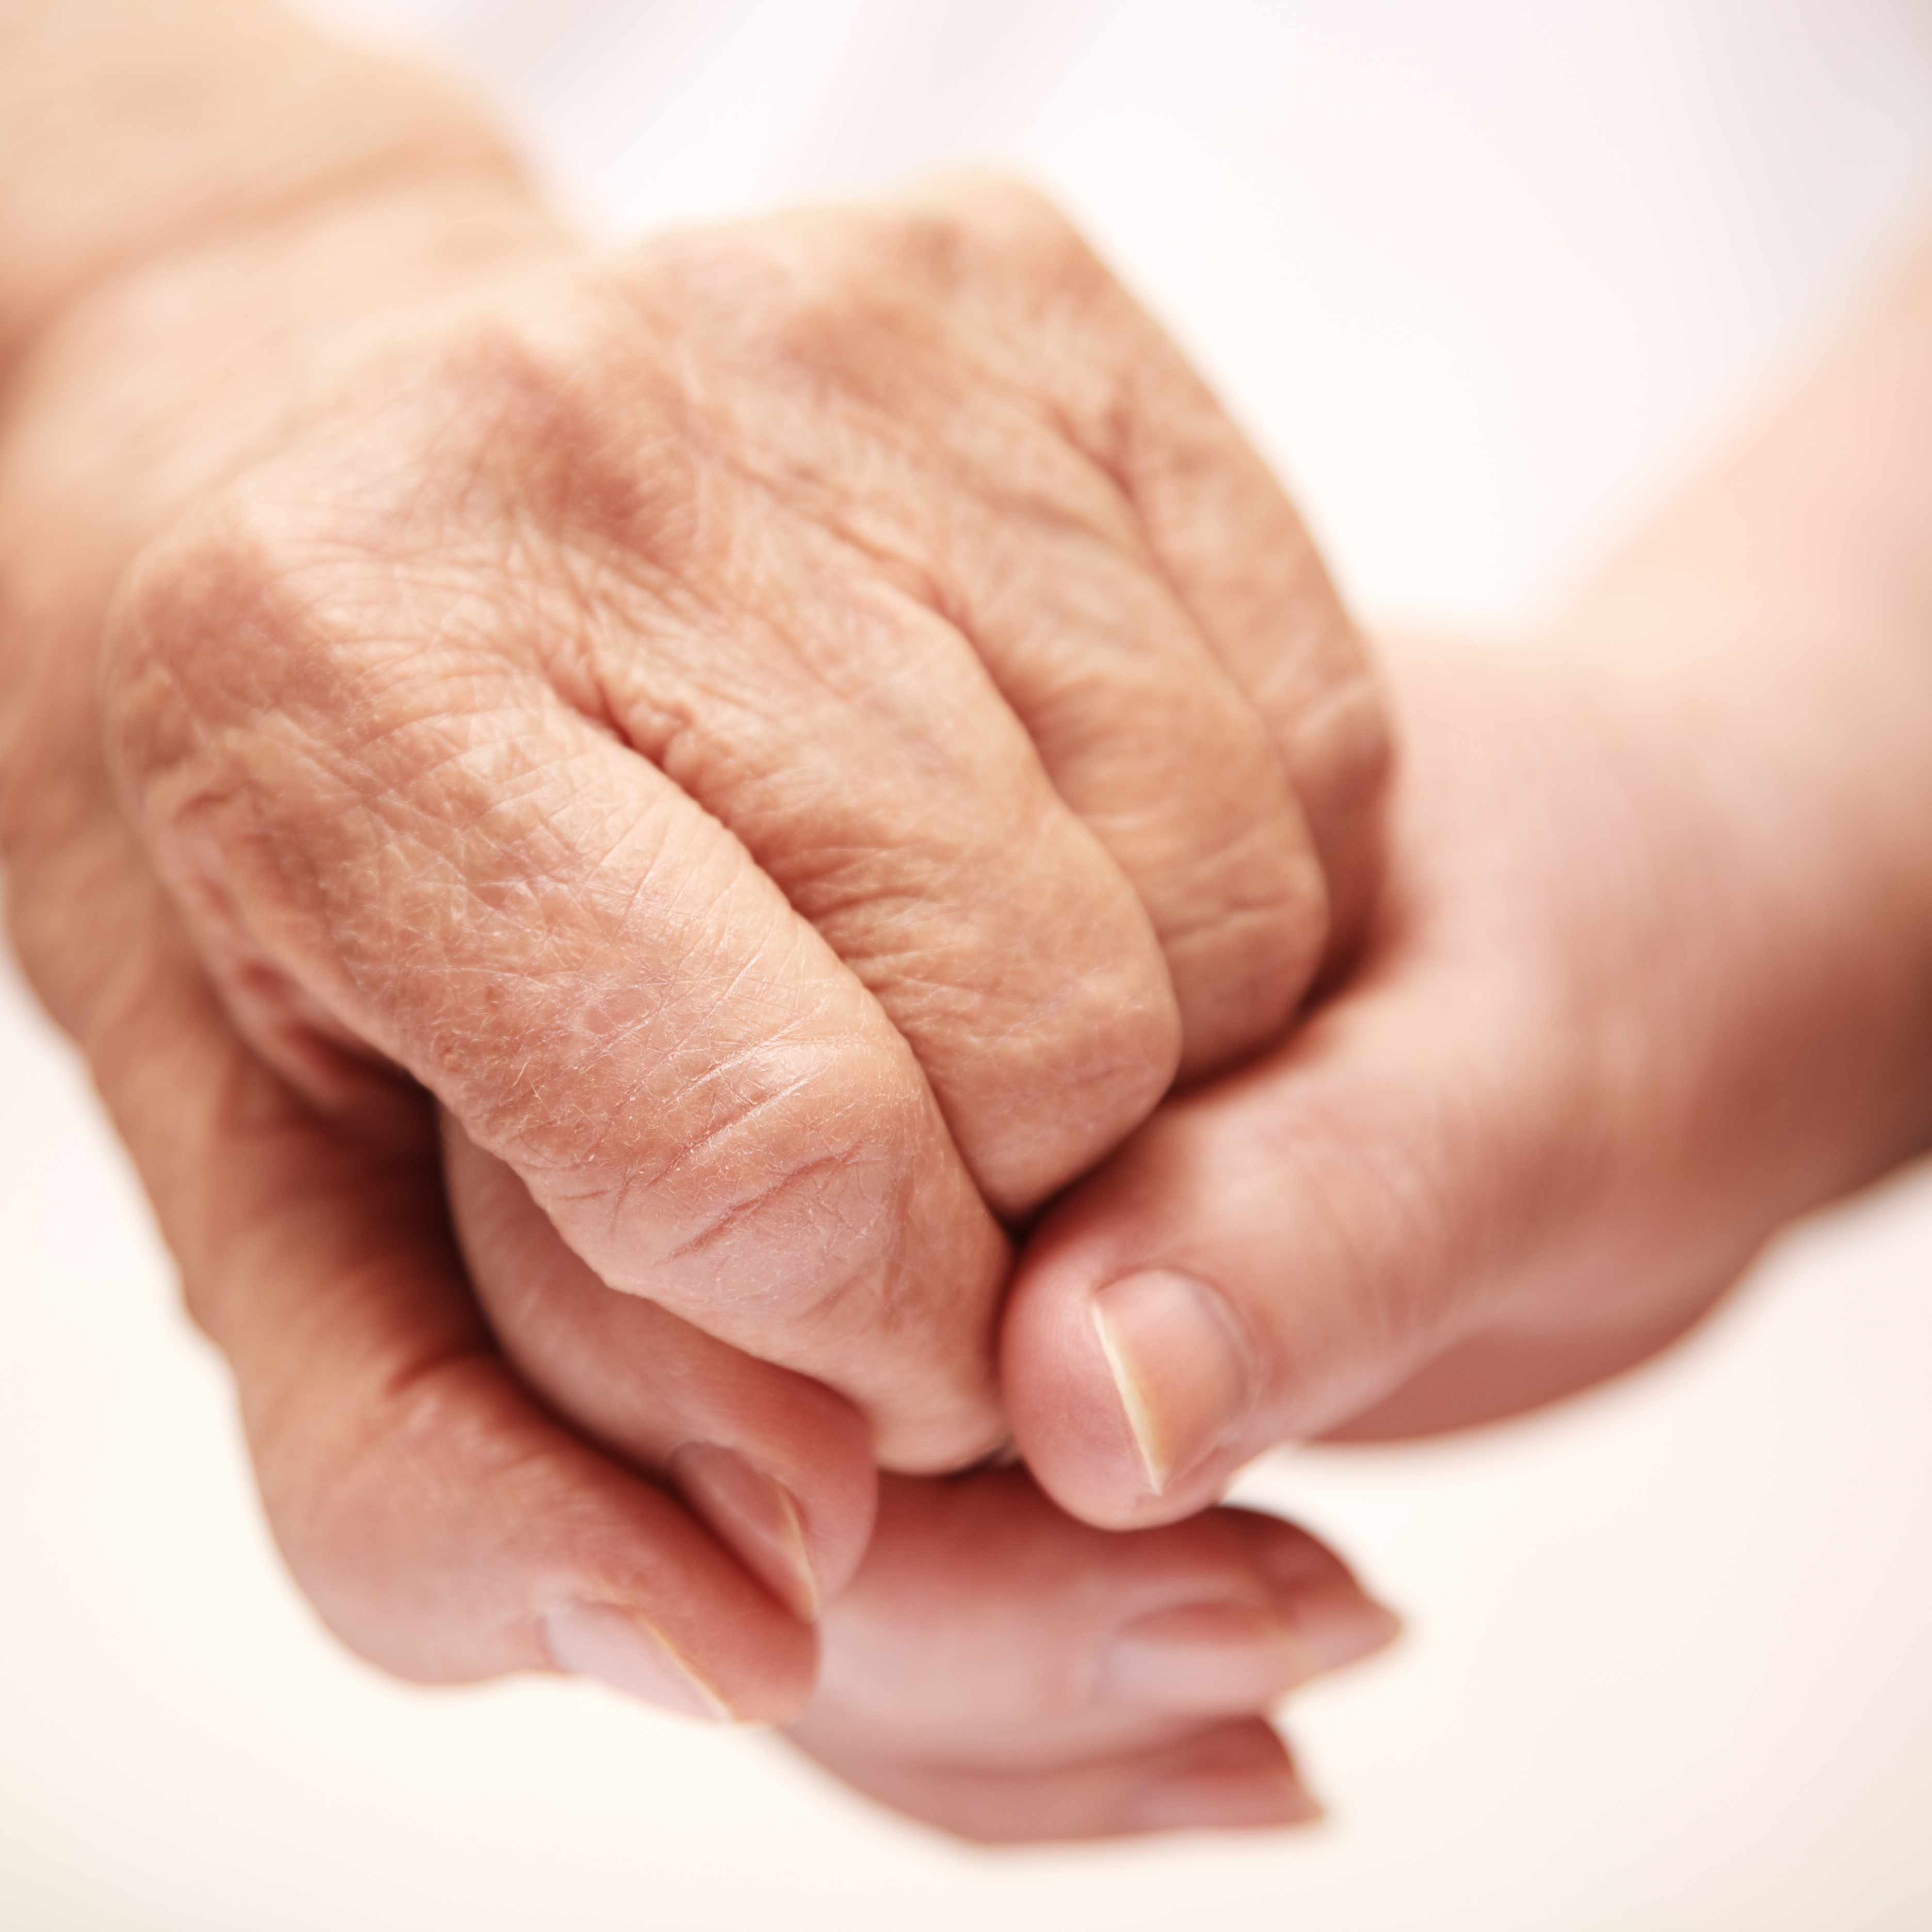 a close-up of two hands clasped, one older and one younger